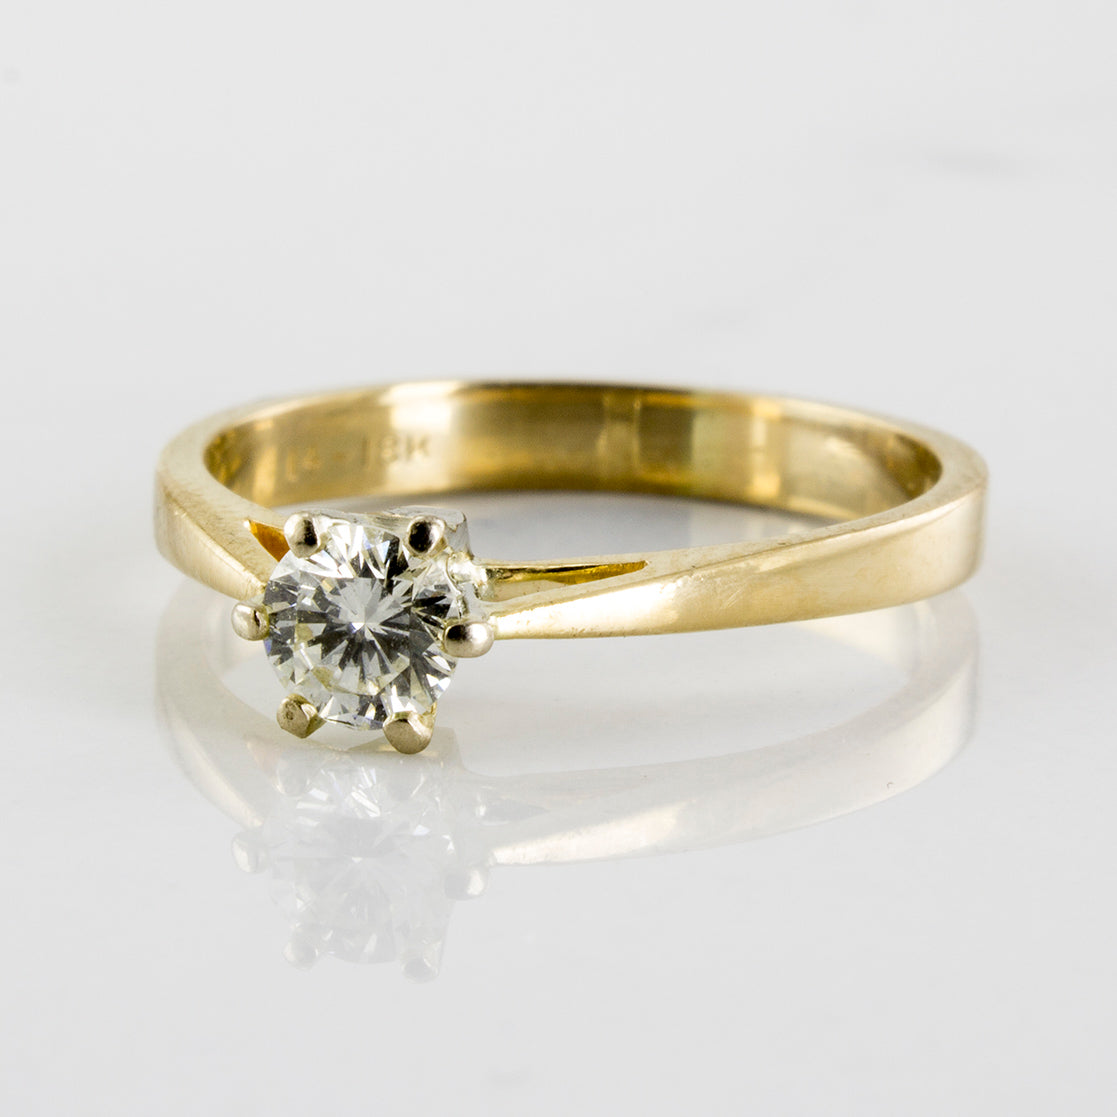 Six Prong Tapered Cathedral Engagement Ring | 0.25 ctw | SZ 5.75 |